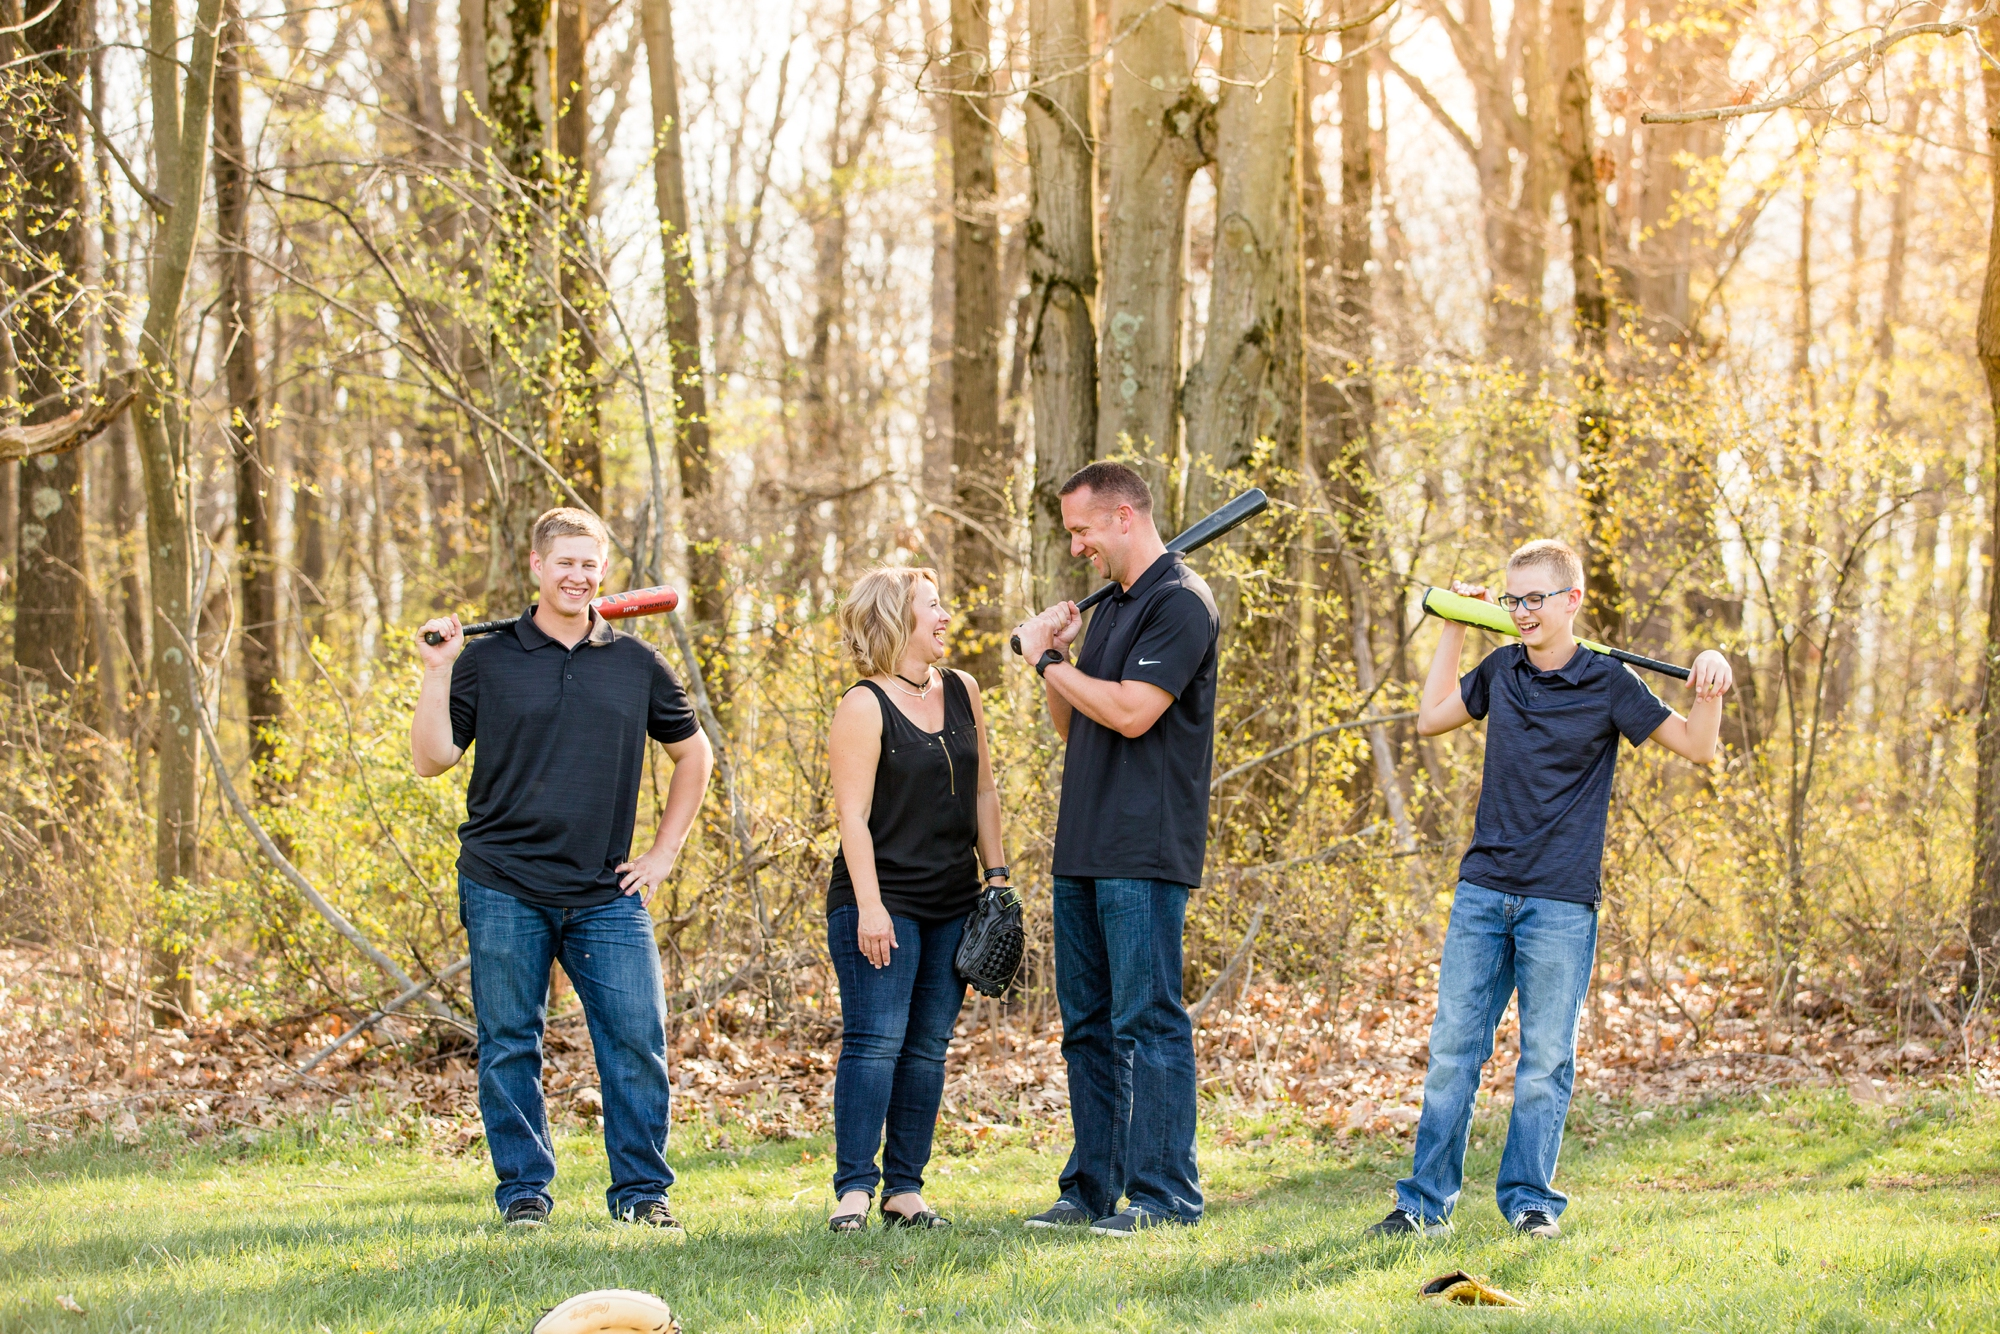 cranberry township family photographer, pittsburgh family photographer, north hills family photographer, wexford family photographer